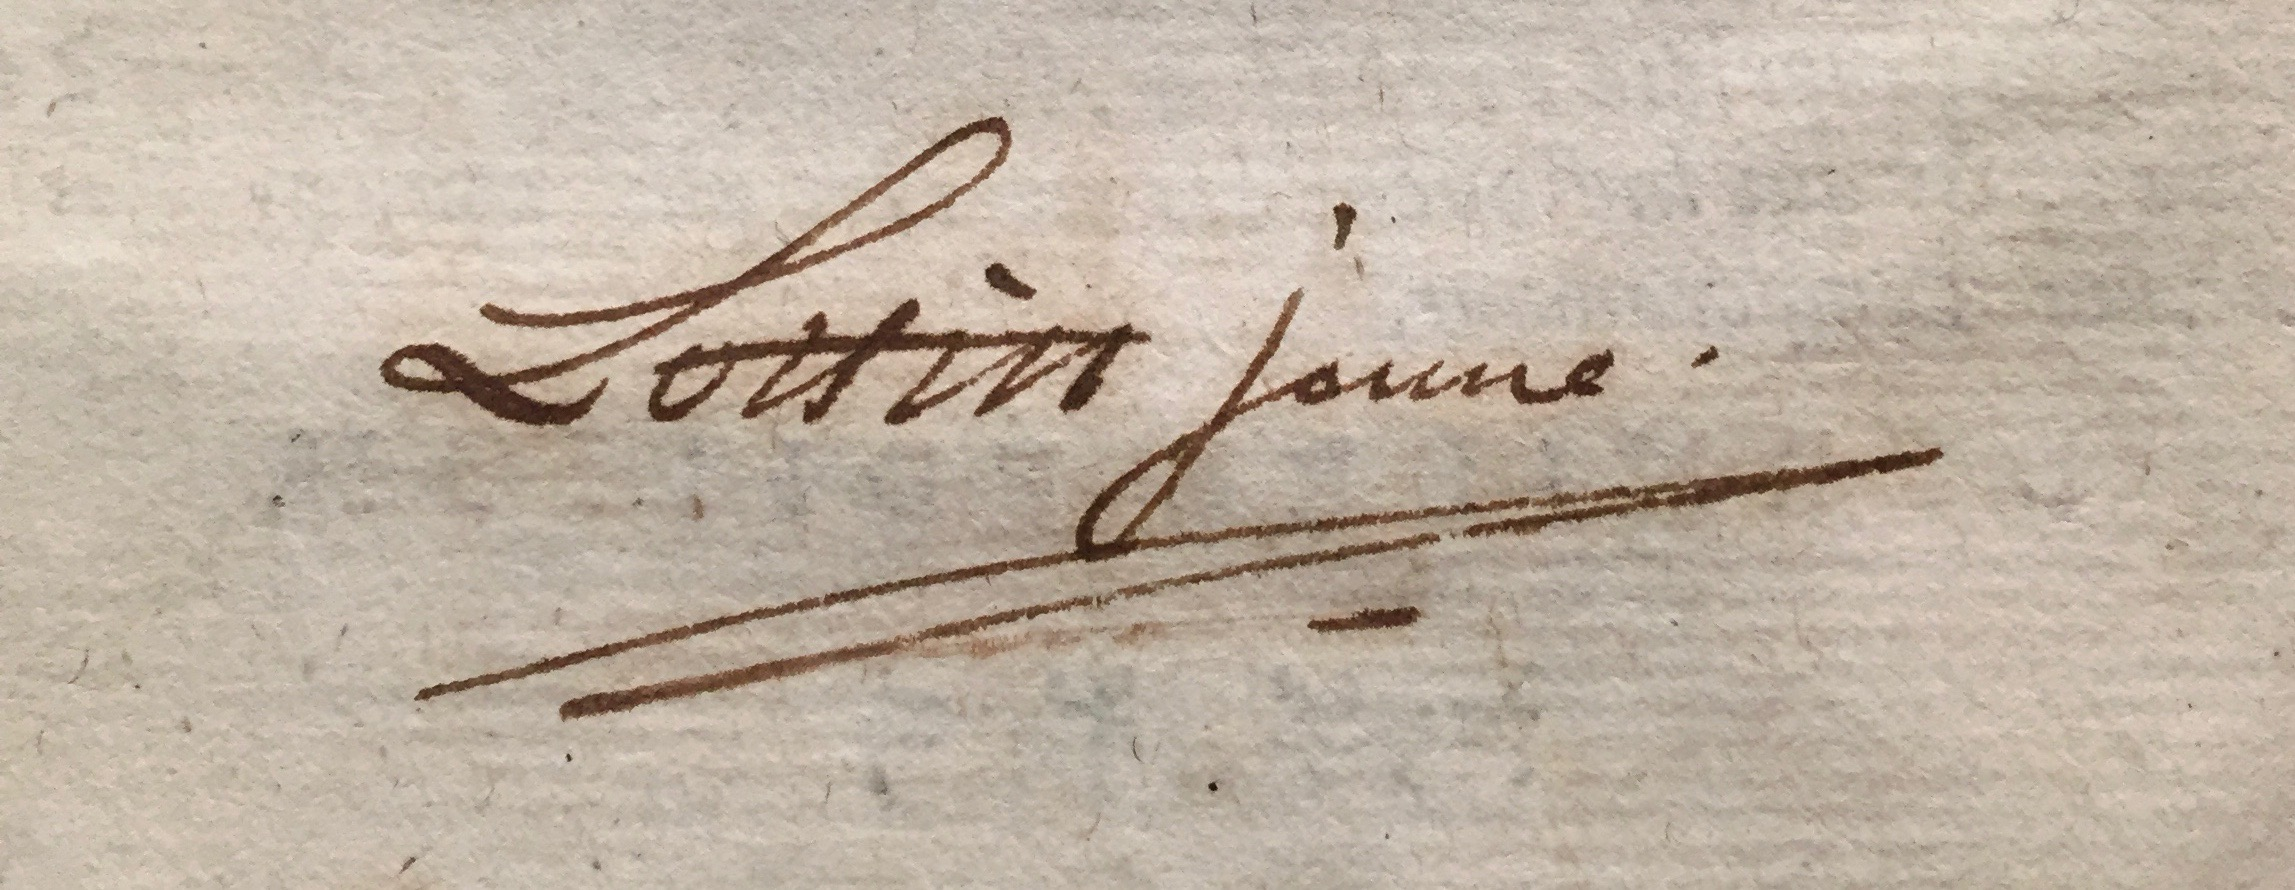 Signature of the publisher, [Antoine-Prosper] Lottin [le] jeune, A2 v .